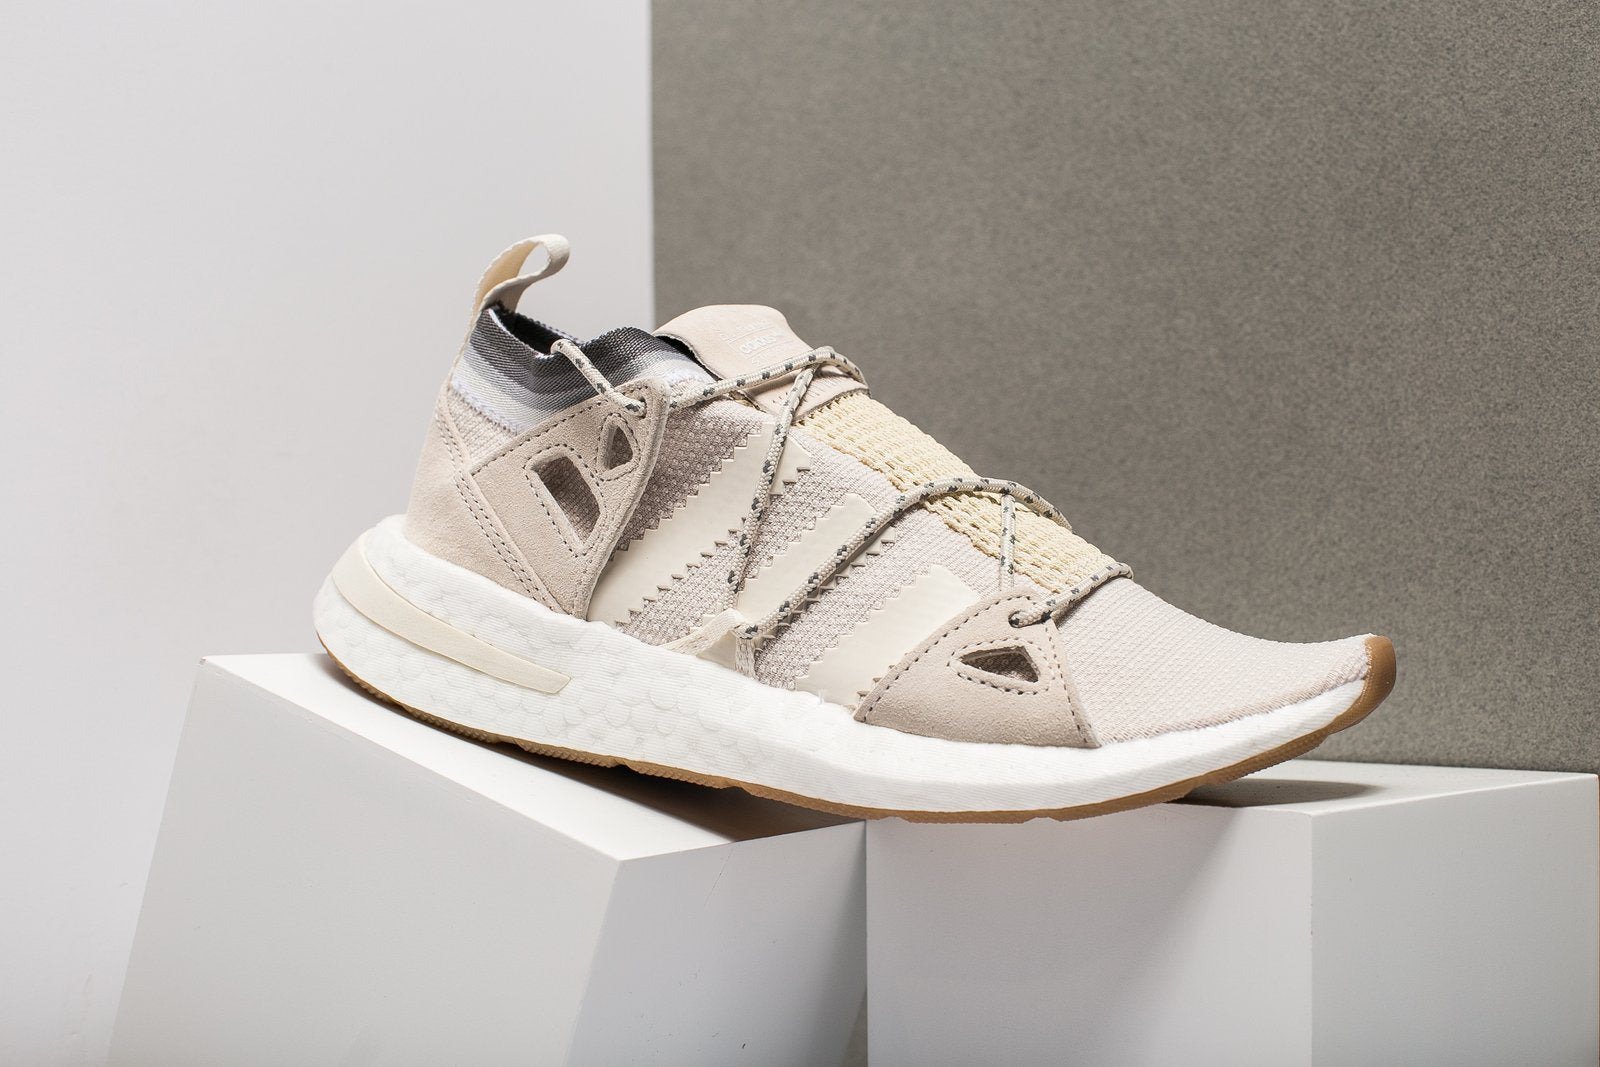 ADIDAS ARKYN WOMENS - Oneness Boutique